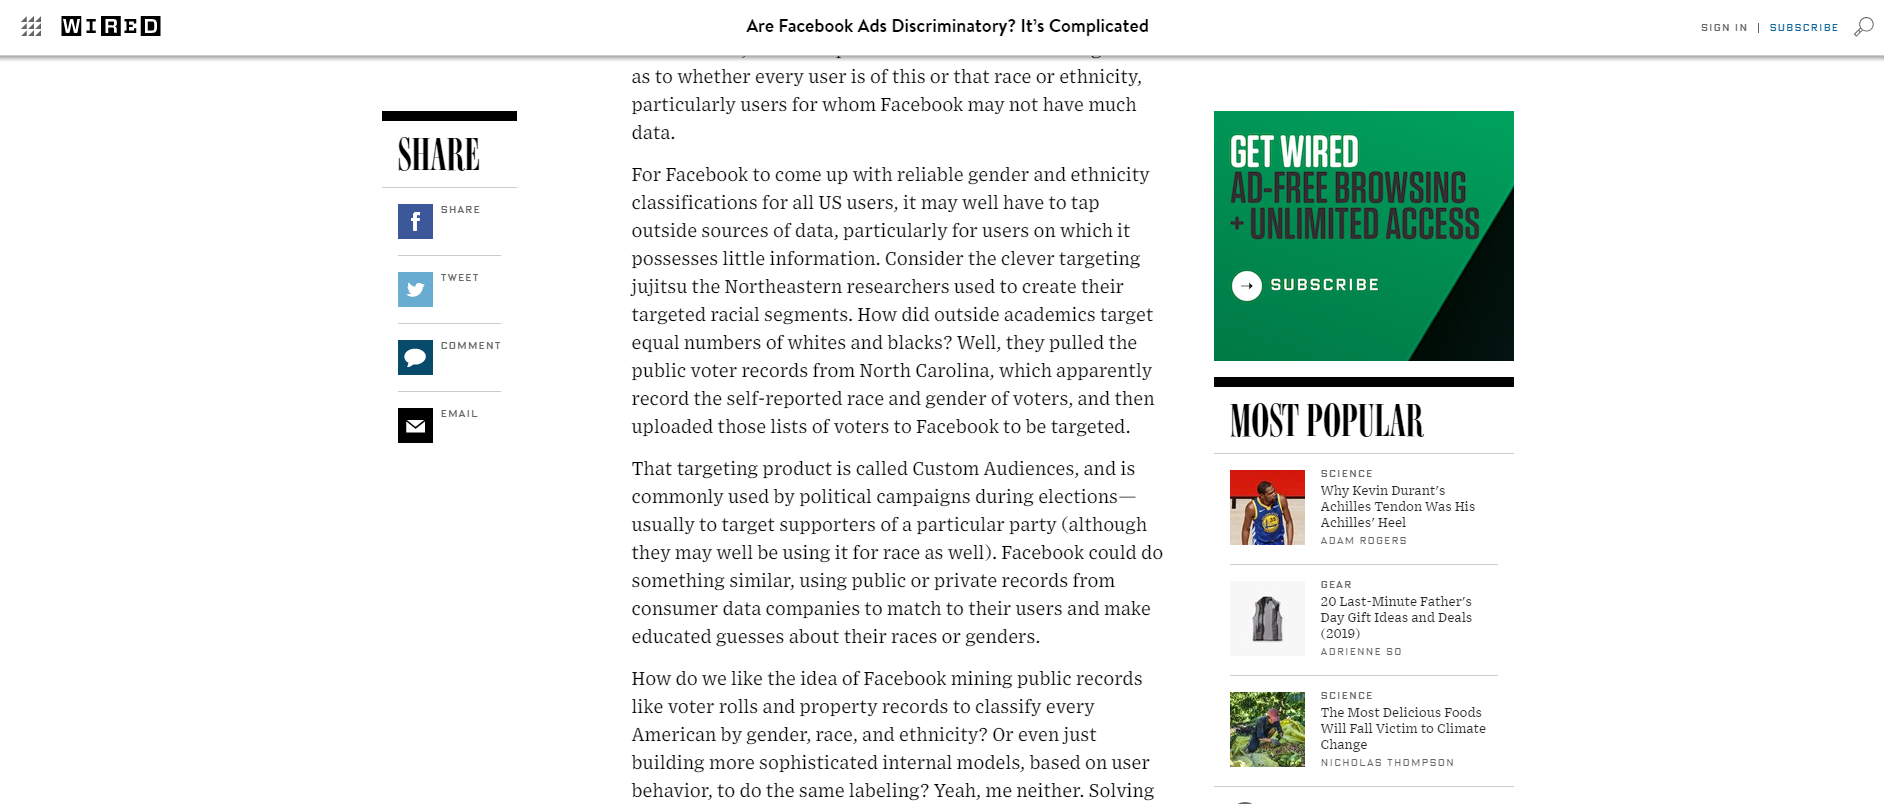 Wired opinion